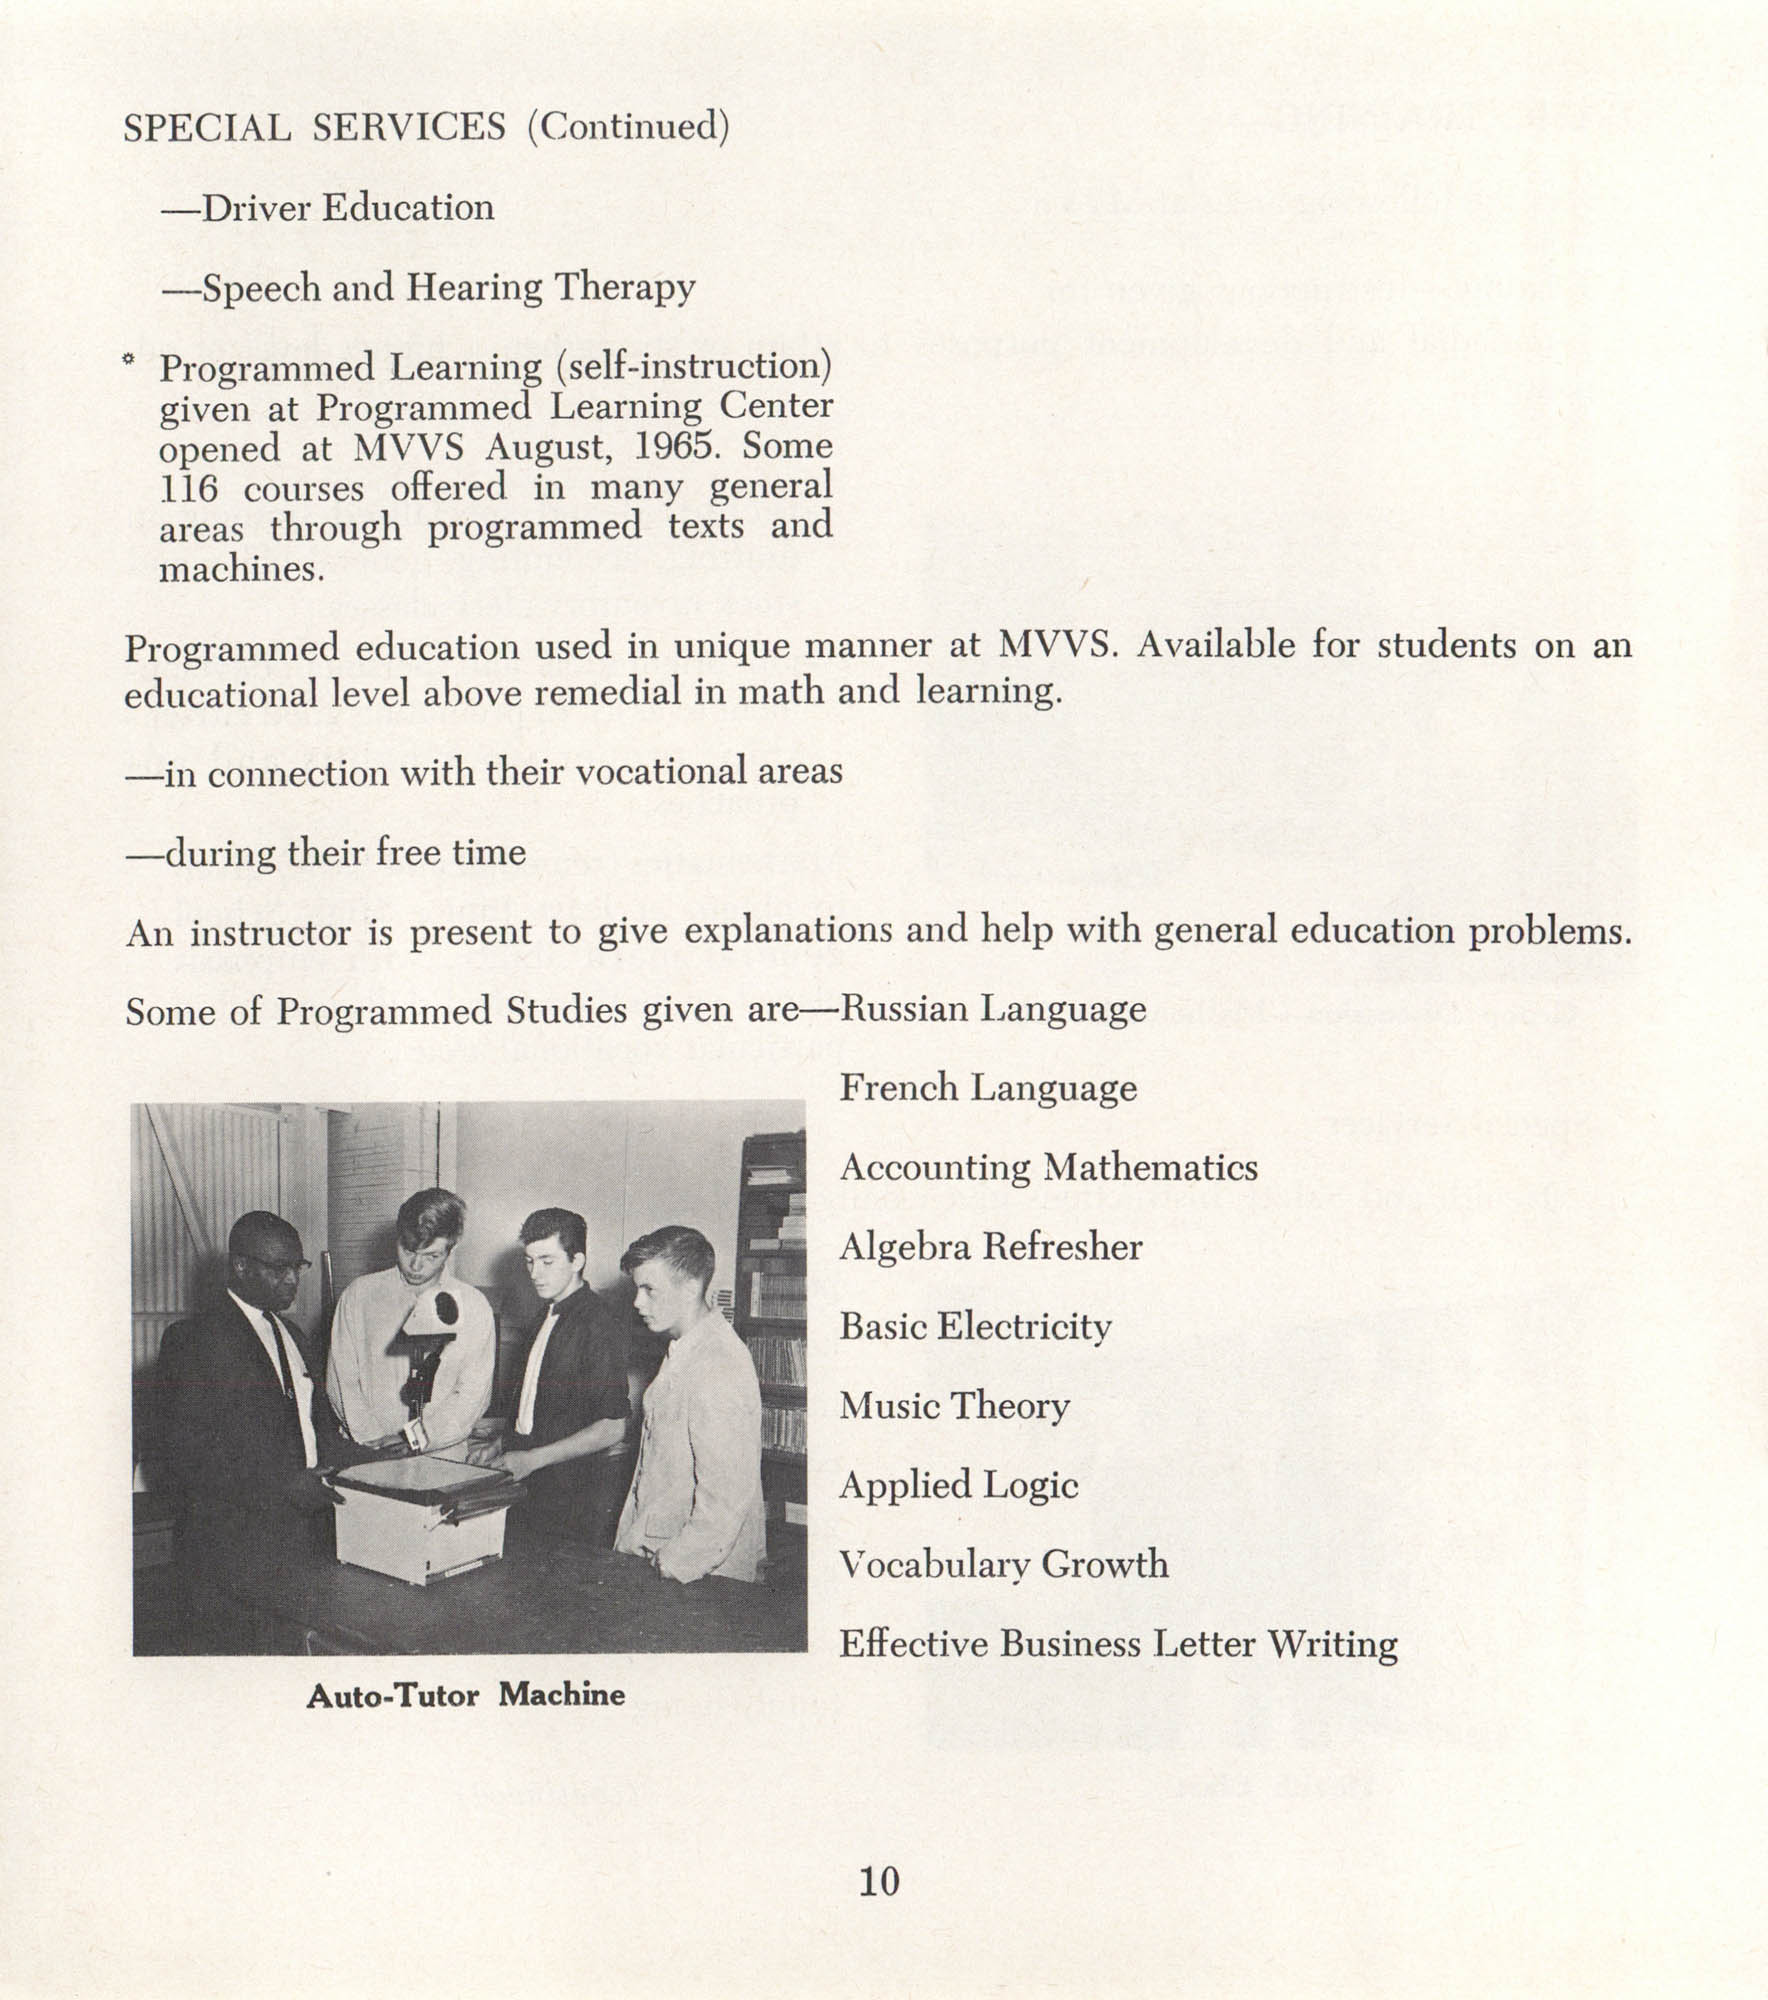 Mahoning Valley Vocational School Pamphlet, Page 10